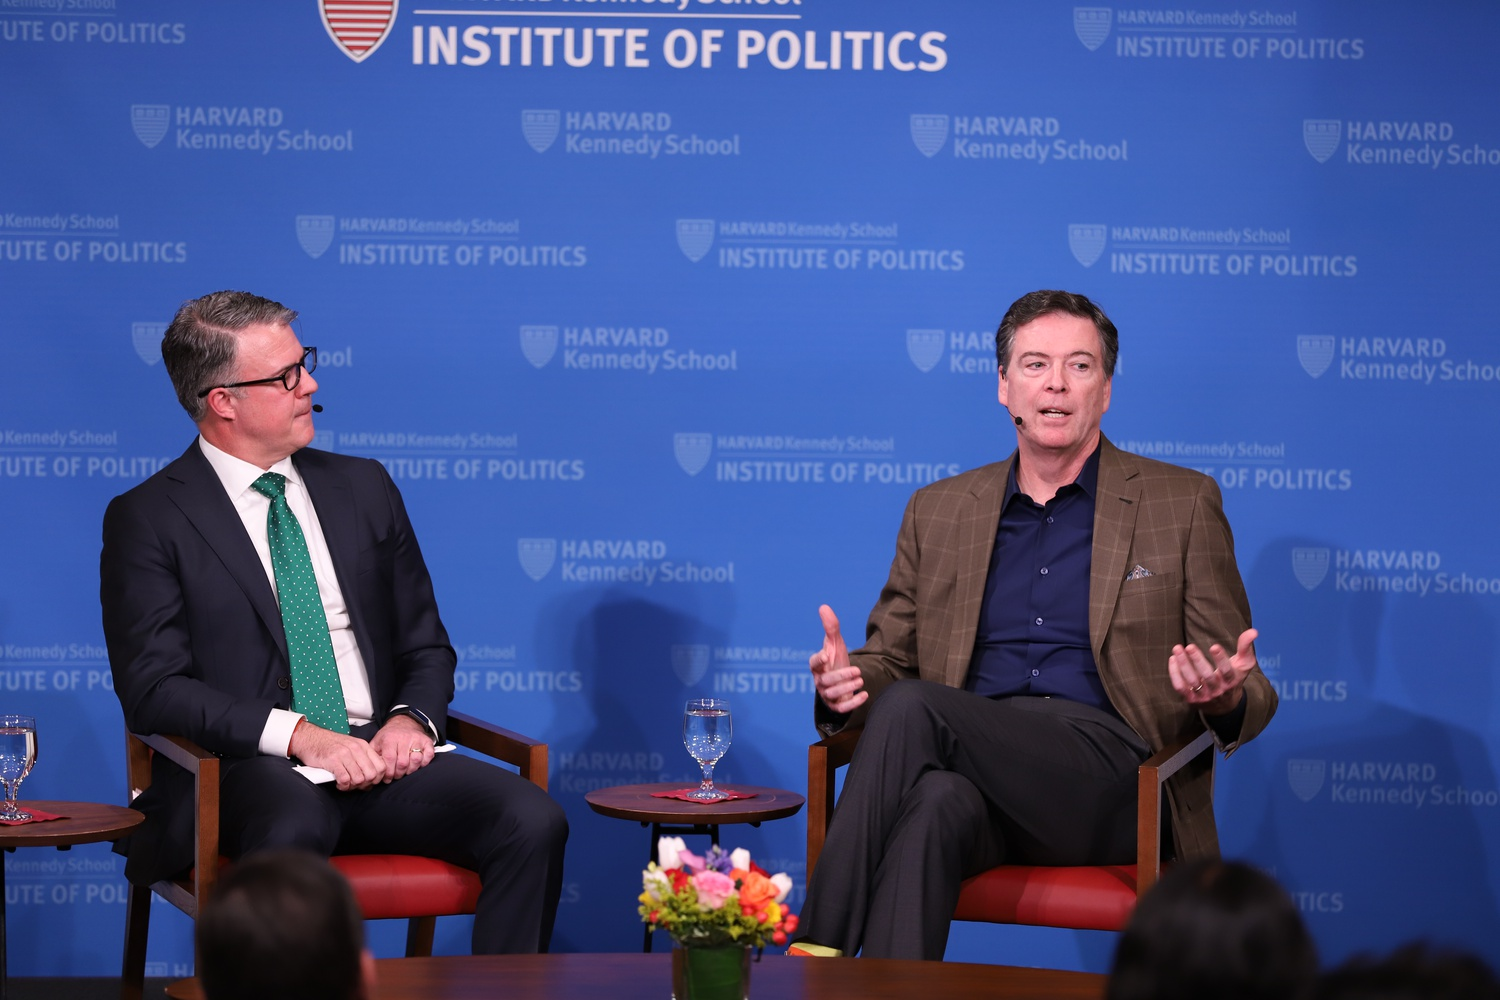 James Comey, former Director of the Federal Bureau of Investigation, discusses his career with Eric Rosenbach, co-director of the Harvard Kennedy School's Belfer Center, Monday night at the Institute of Politics.